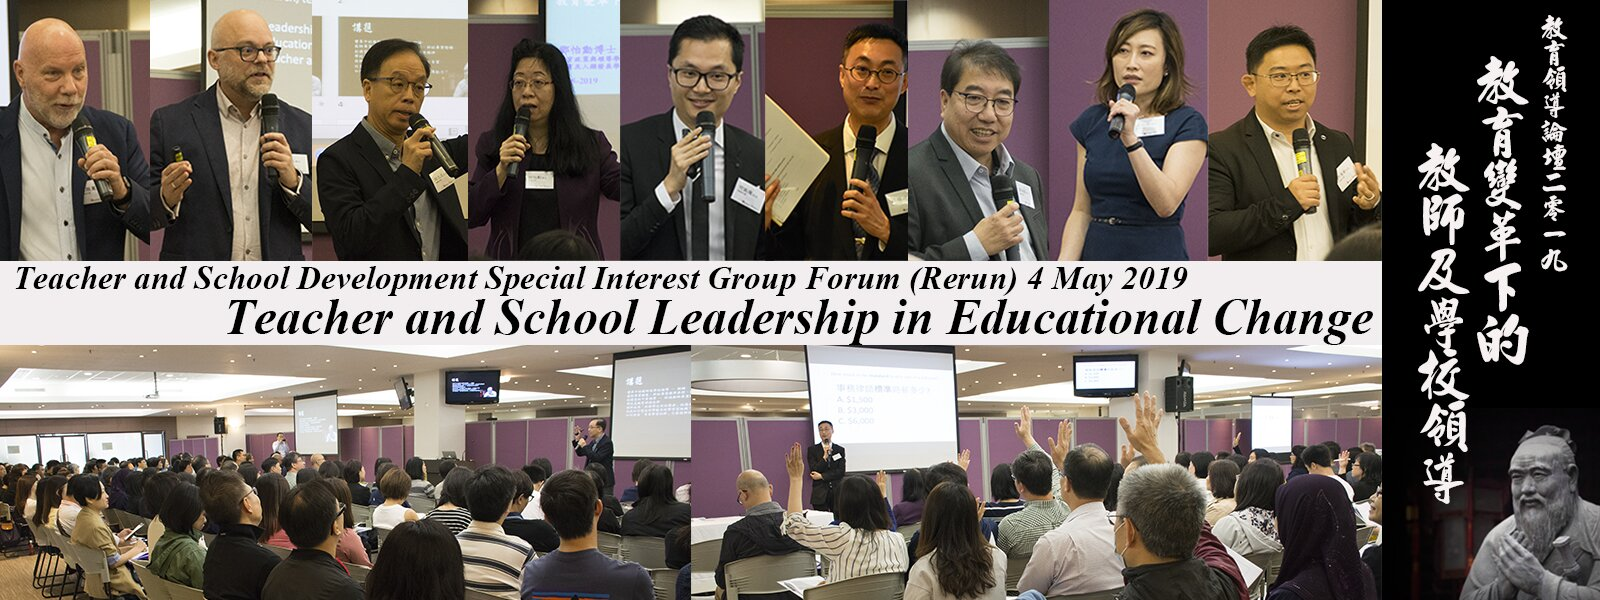 Experts discuss school and teacher leadership in time of educational change